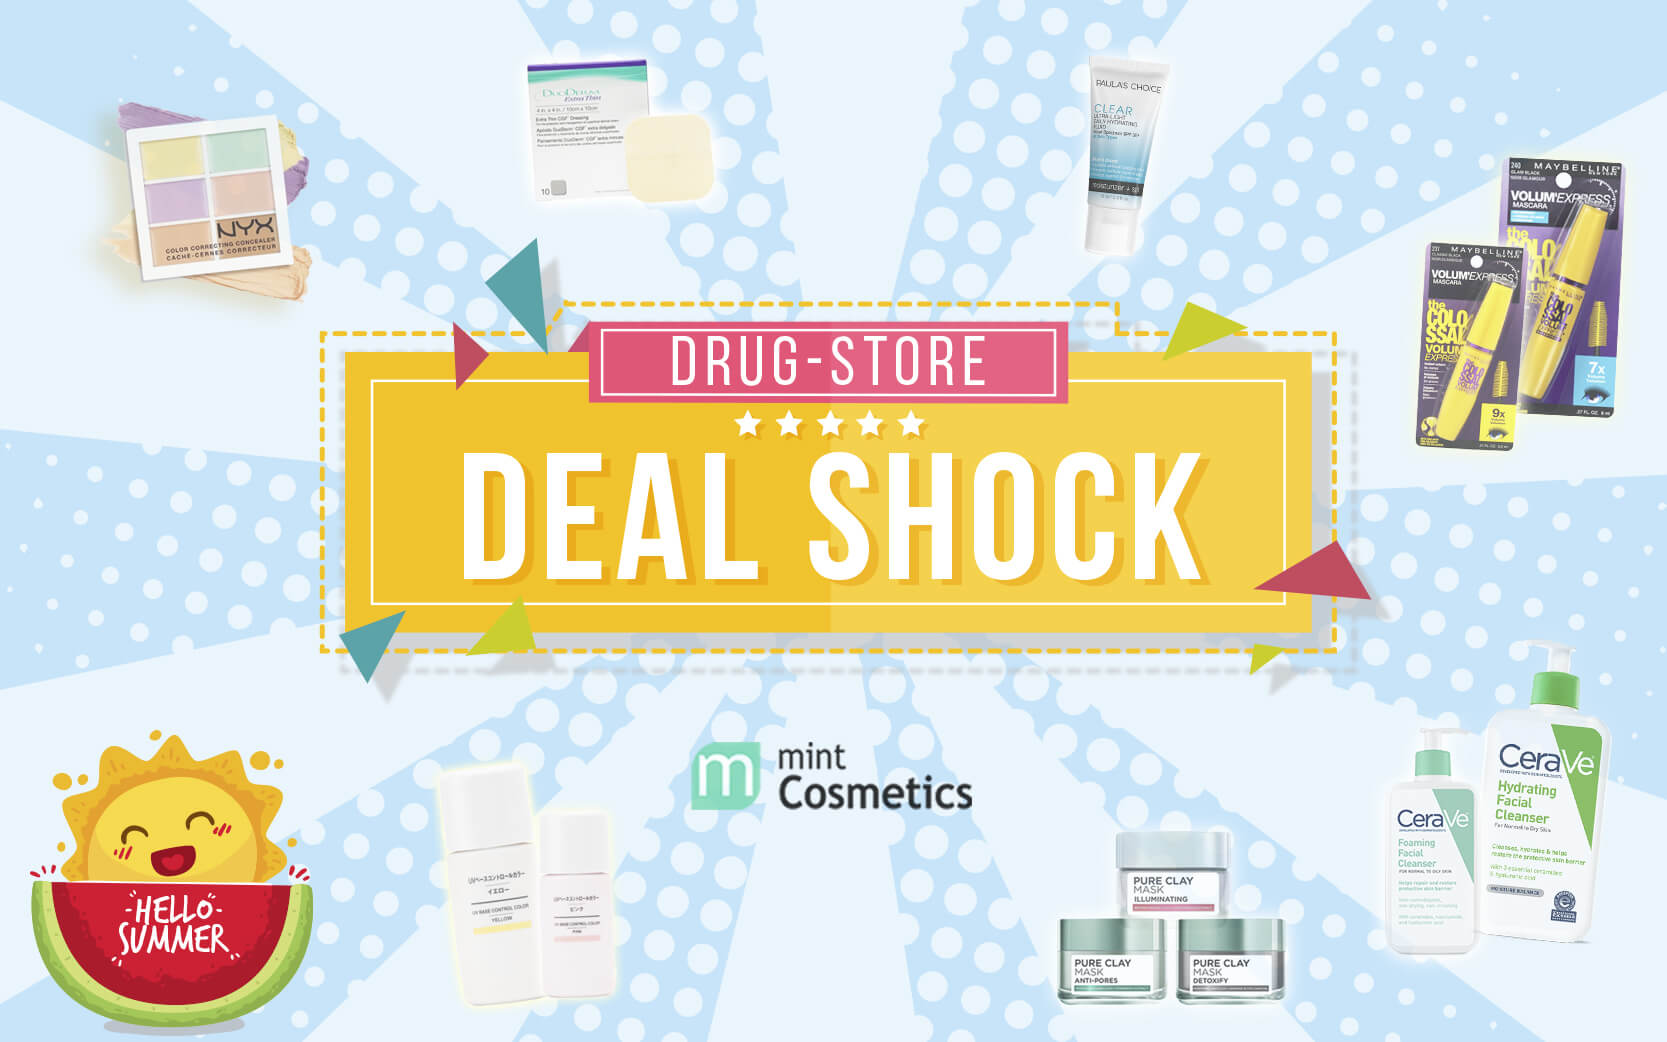 deal-shock-drugstore-thang-5-don-he-khong-lo-rong-tui